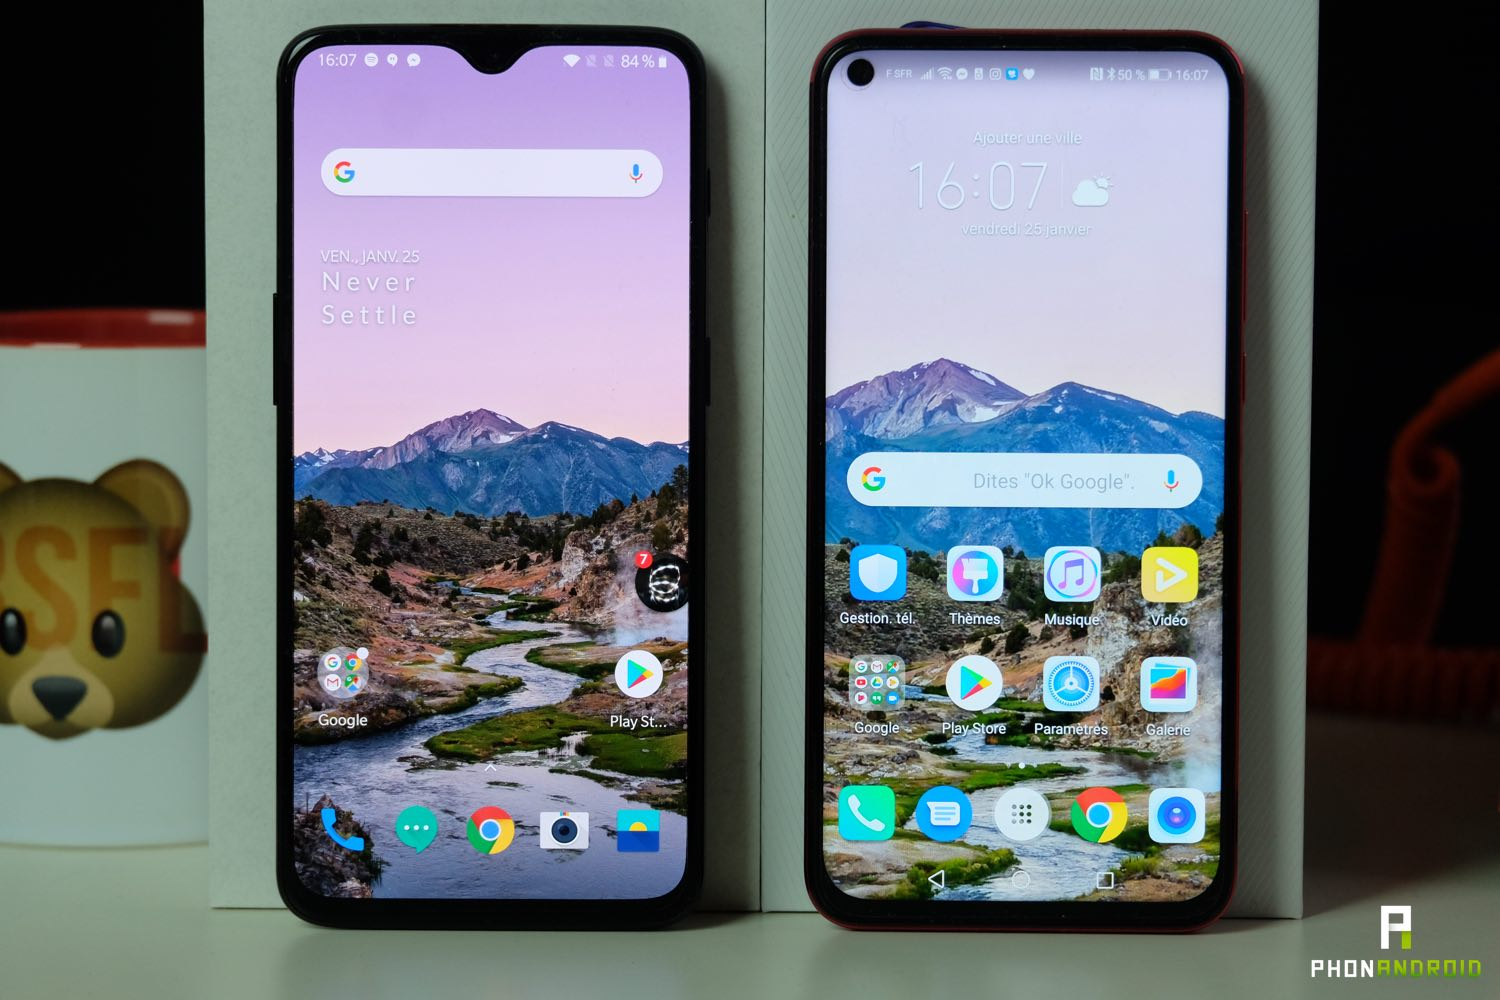 comparatif honor view 20 OnePlus 6t ecru